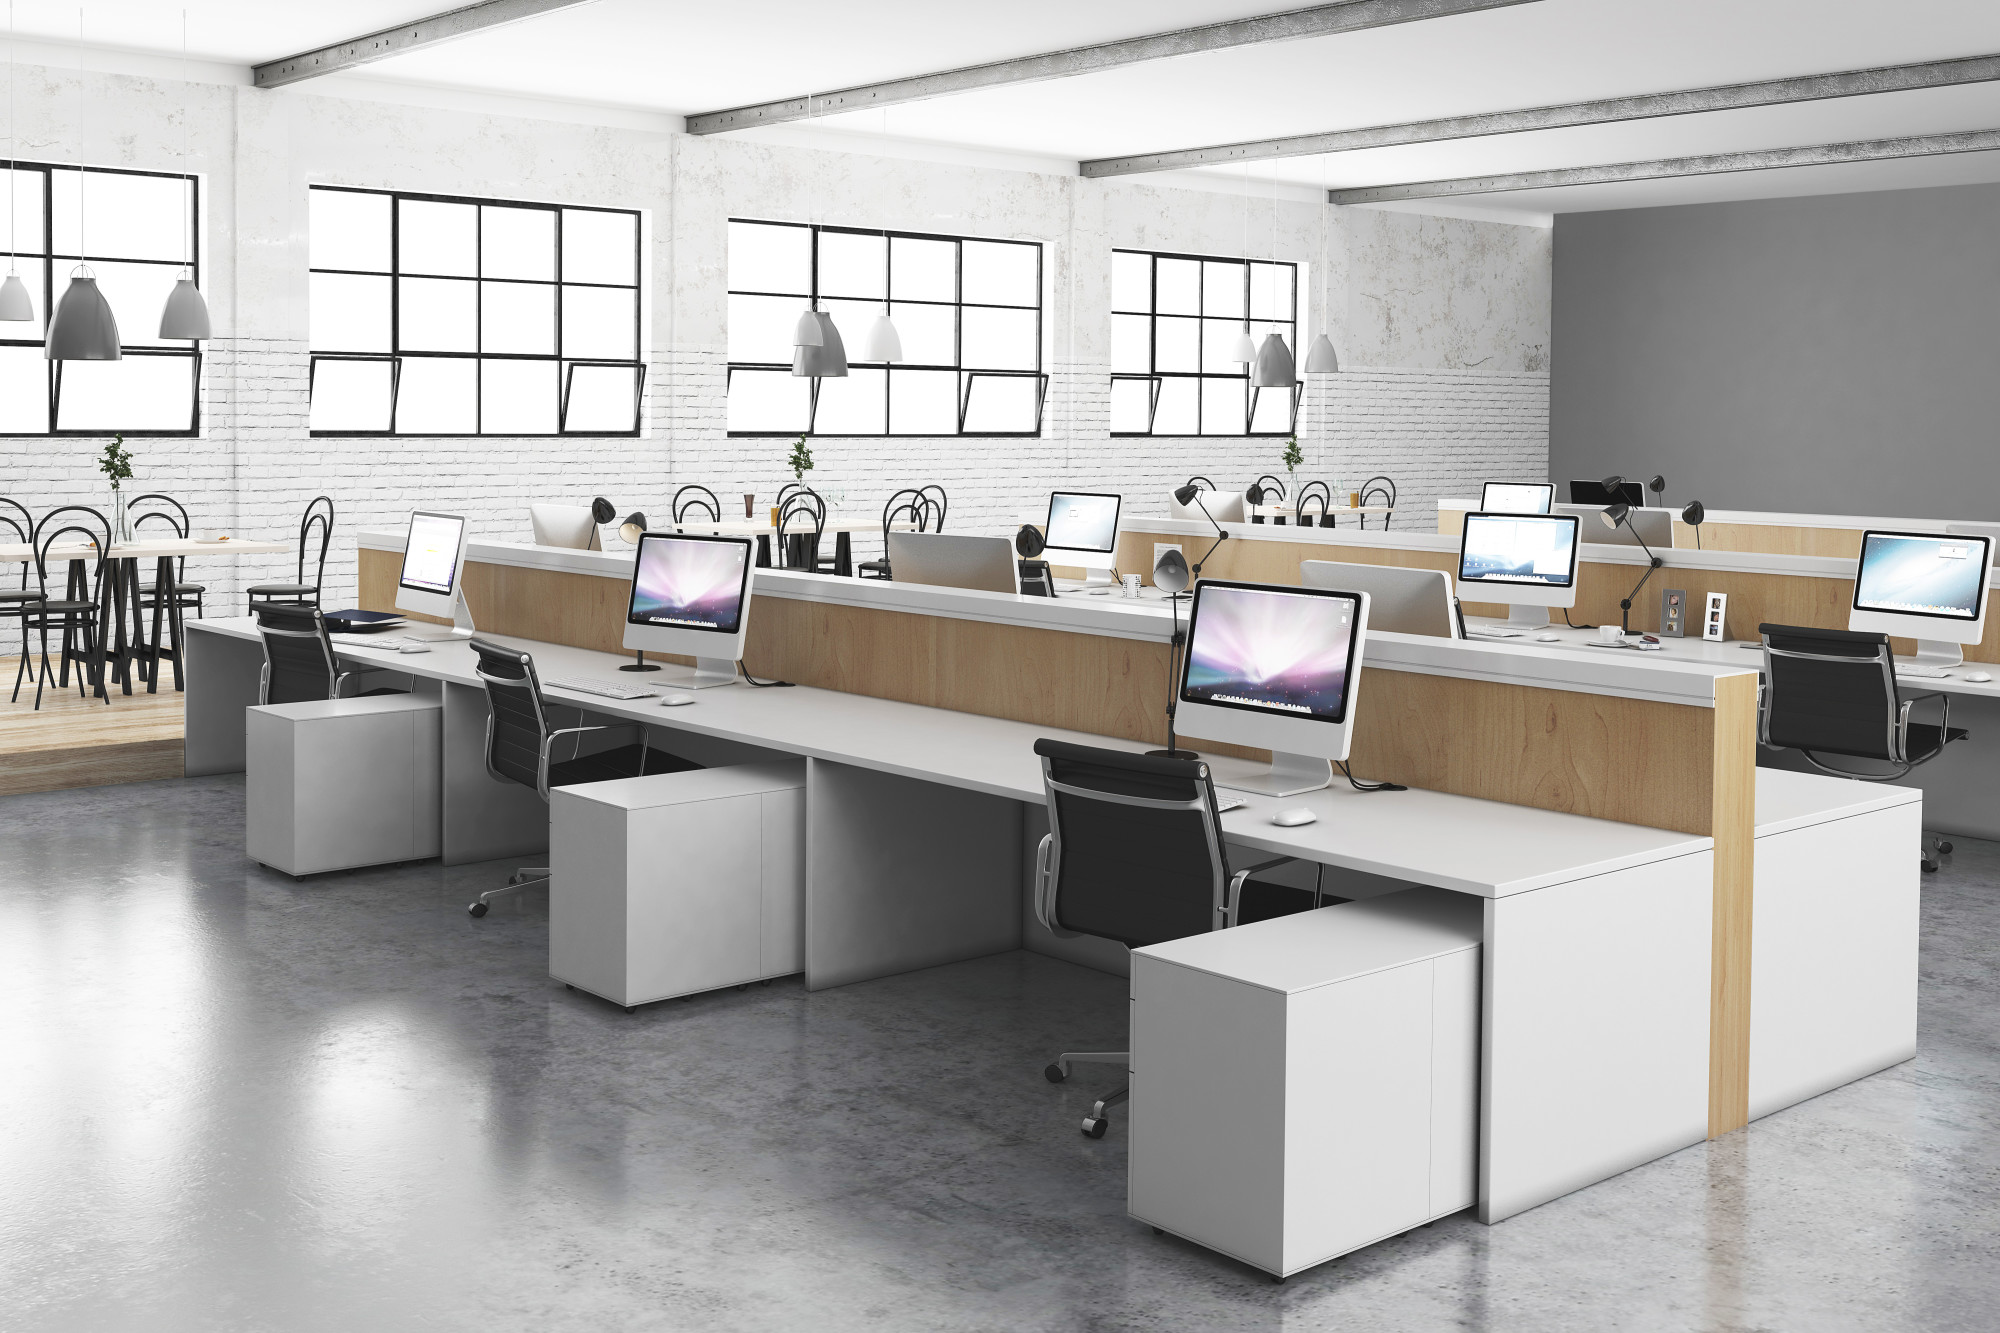 Should I Buy an Office Space for My Business?